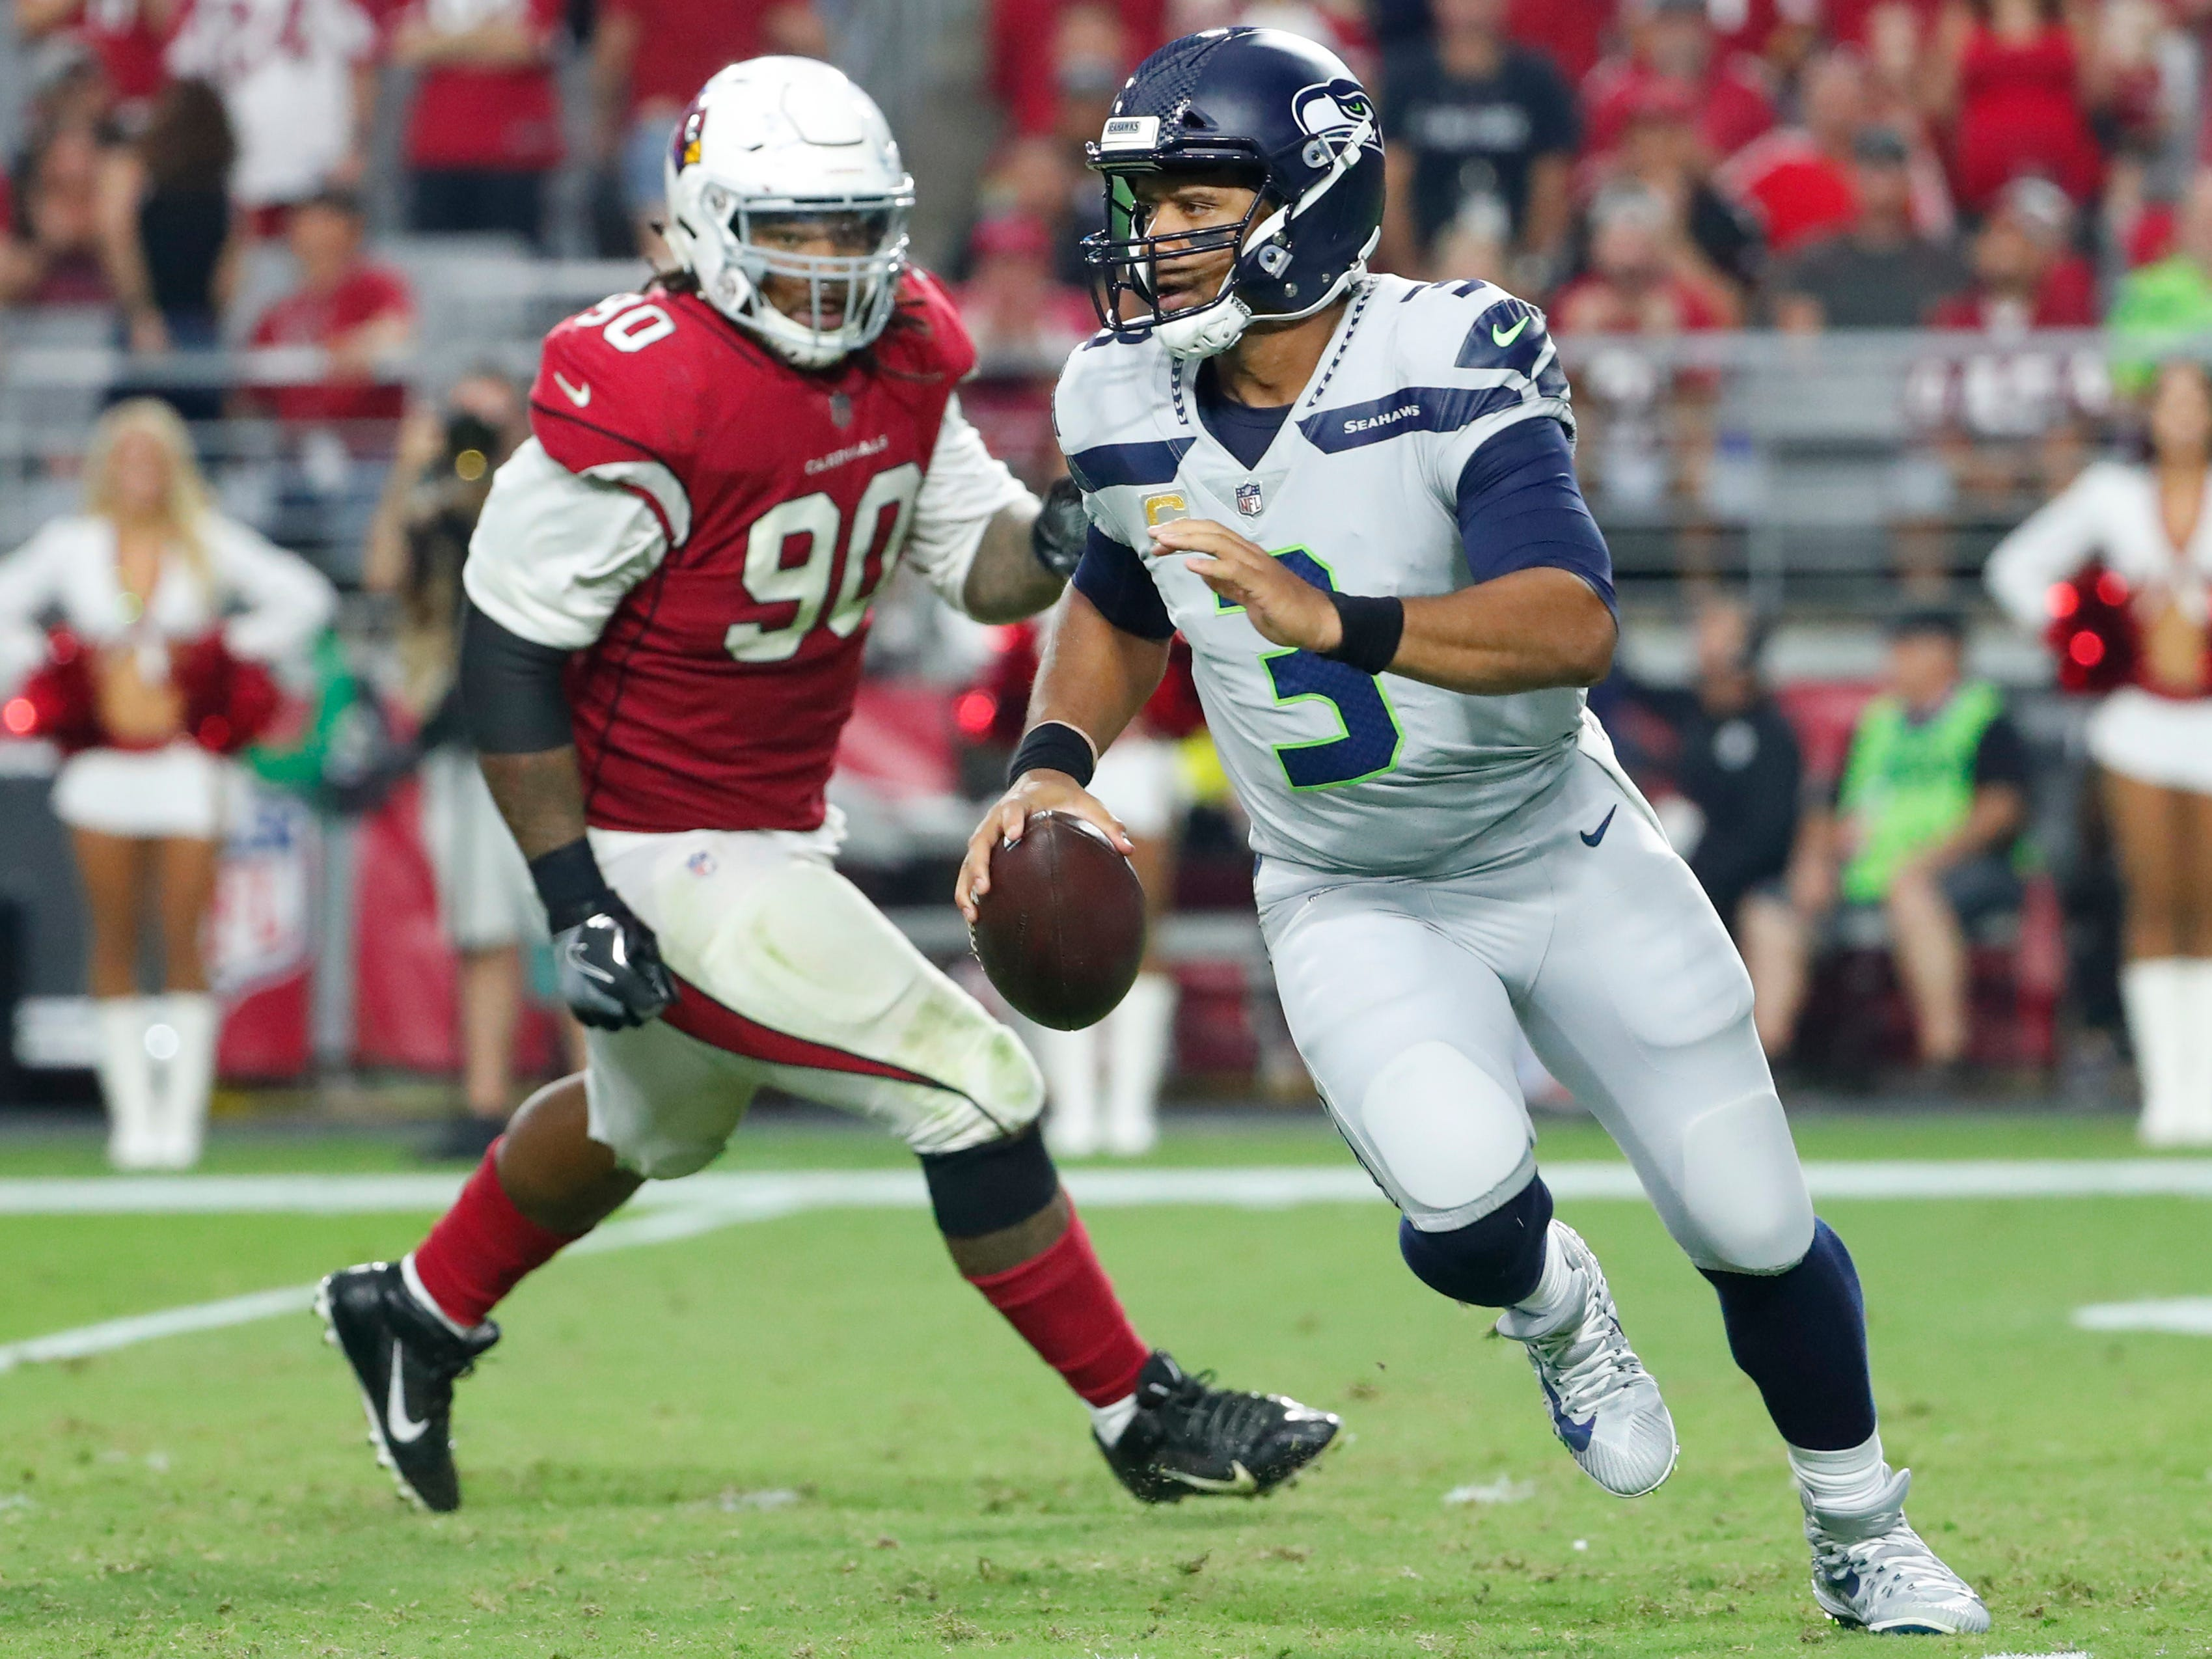 Seattle Seahawks quarterback Russell Wilson (3) scrambles away from Arizona Cardinals defensive tackle Robert Nkemdiche (90) during the second quarter at State Farm Stadium in Glendale, Ariz. September 30, 2018.